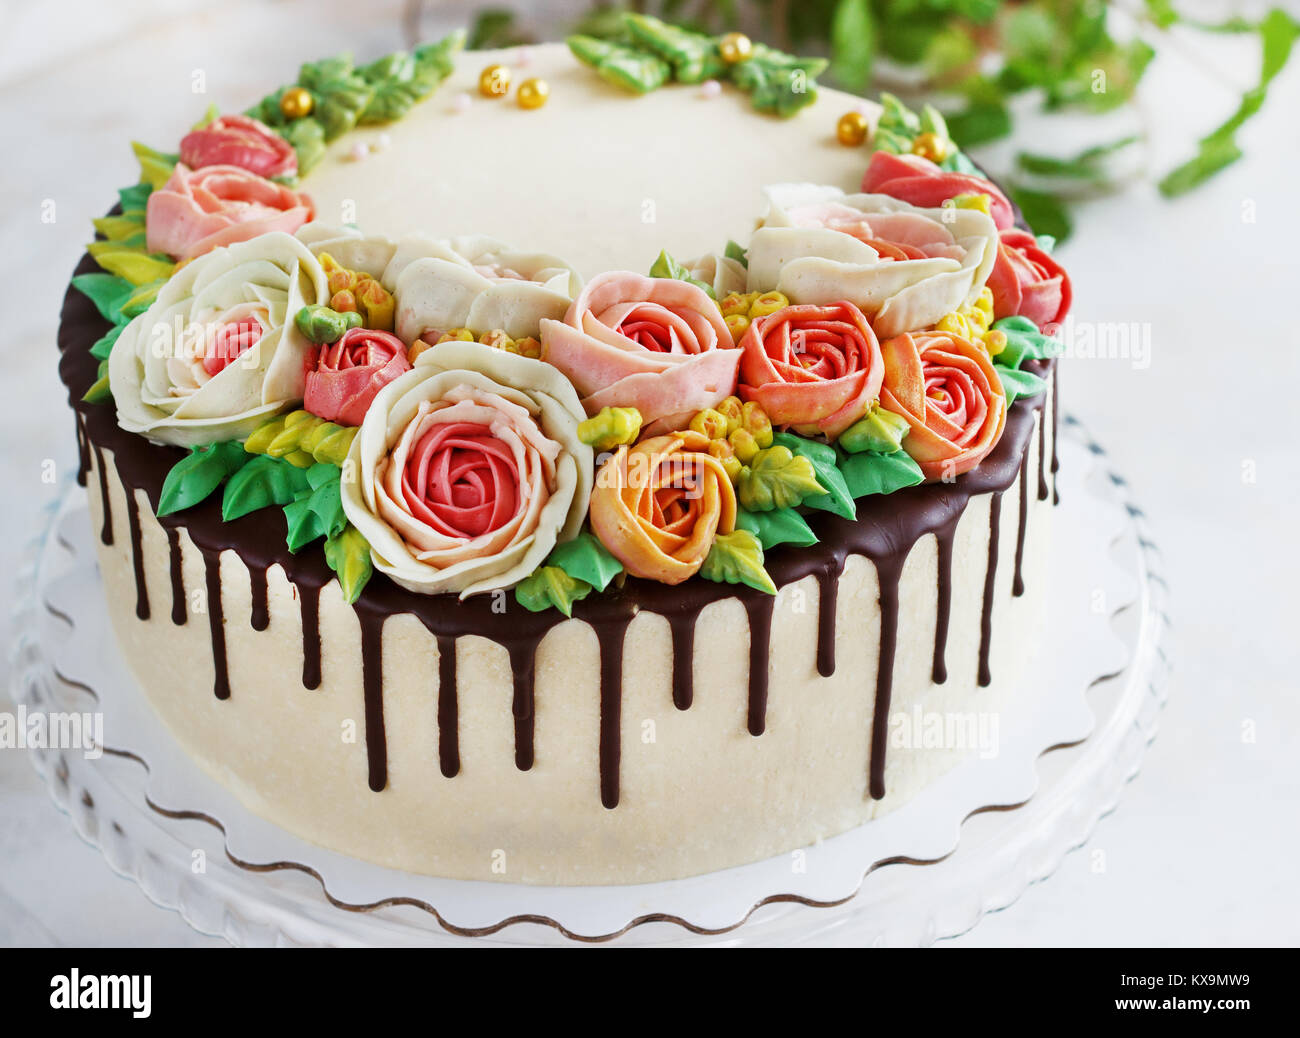 Groovy Birthday Cake With Flowers Rose On White Background Stock Photo Funny Birthday Cards Online Elaedamsfinfo